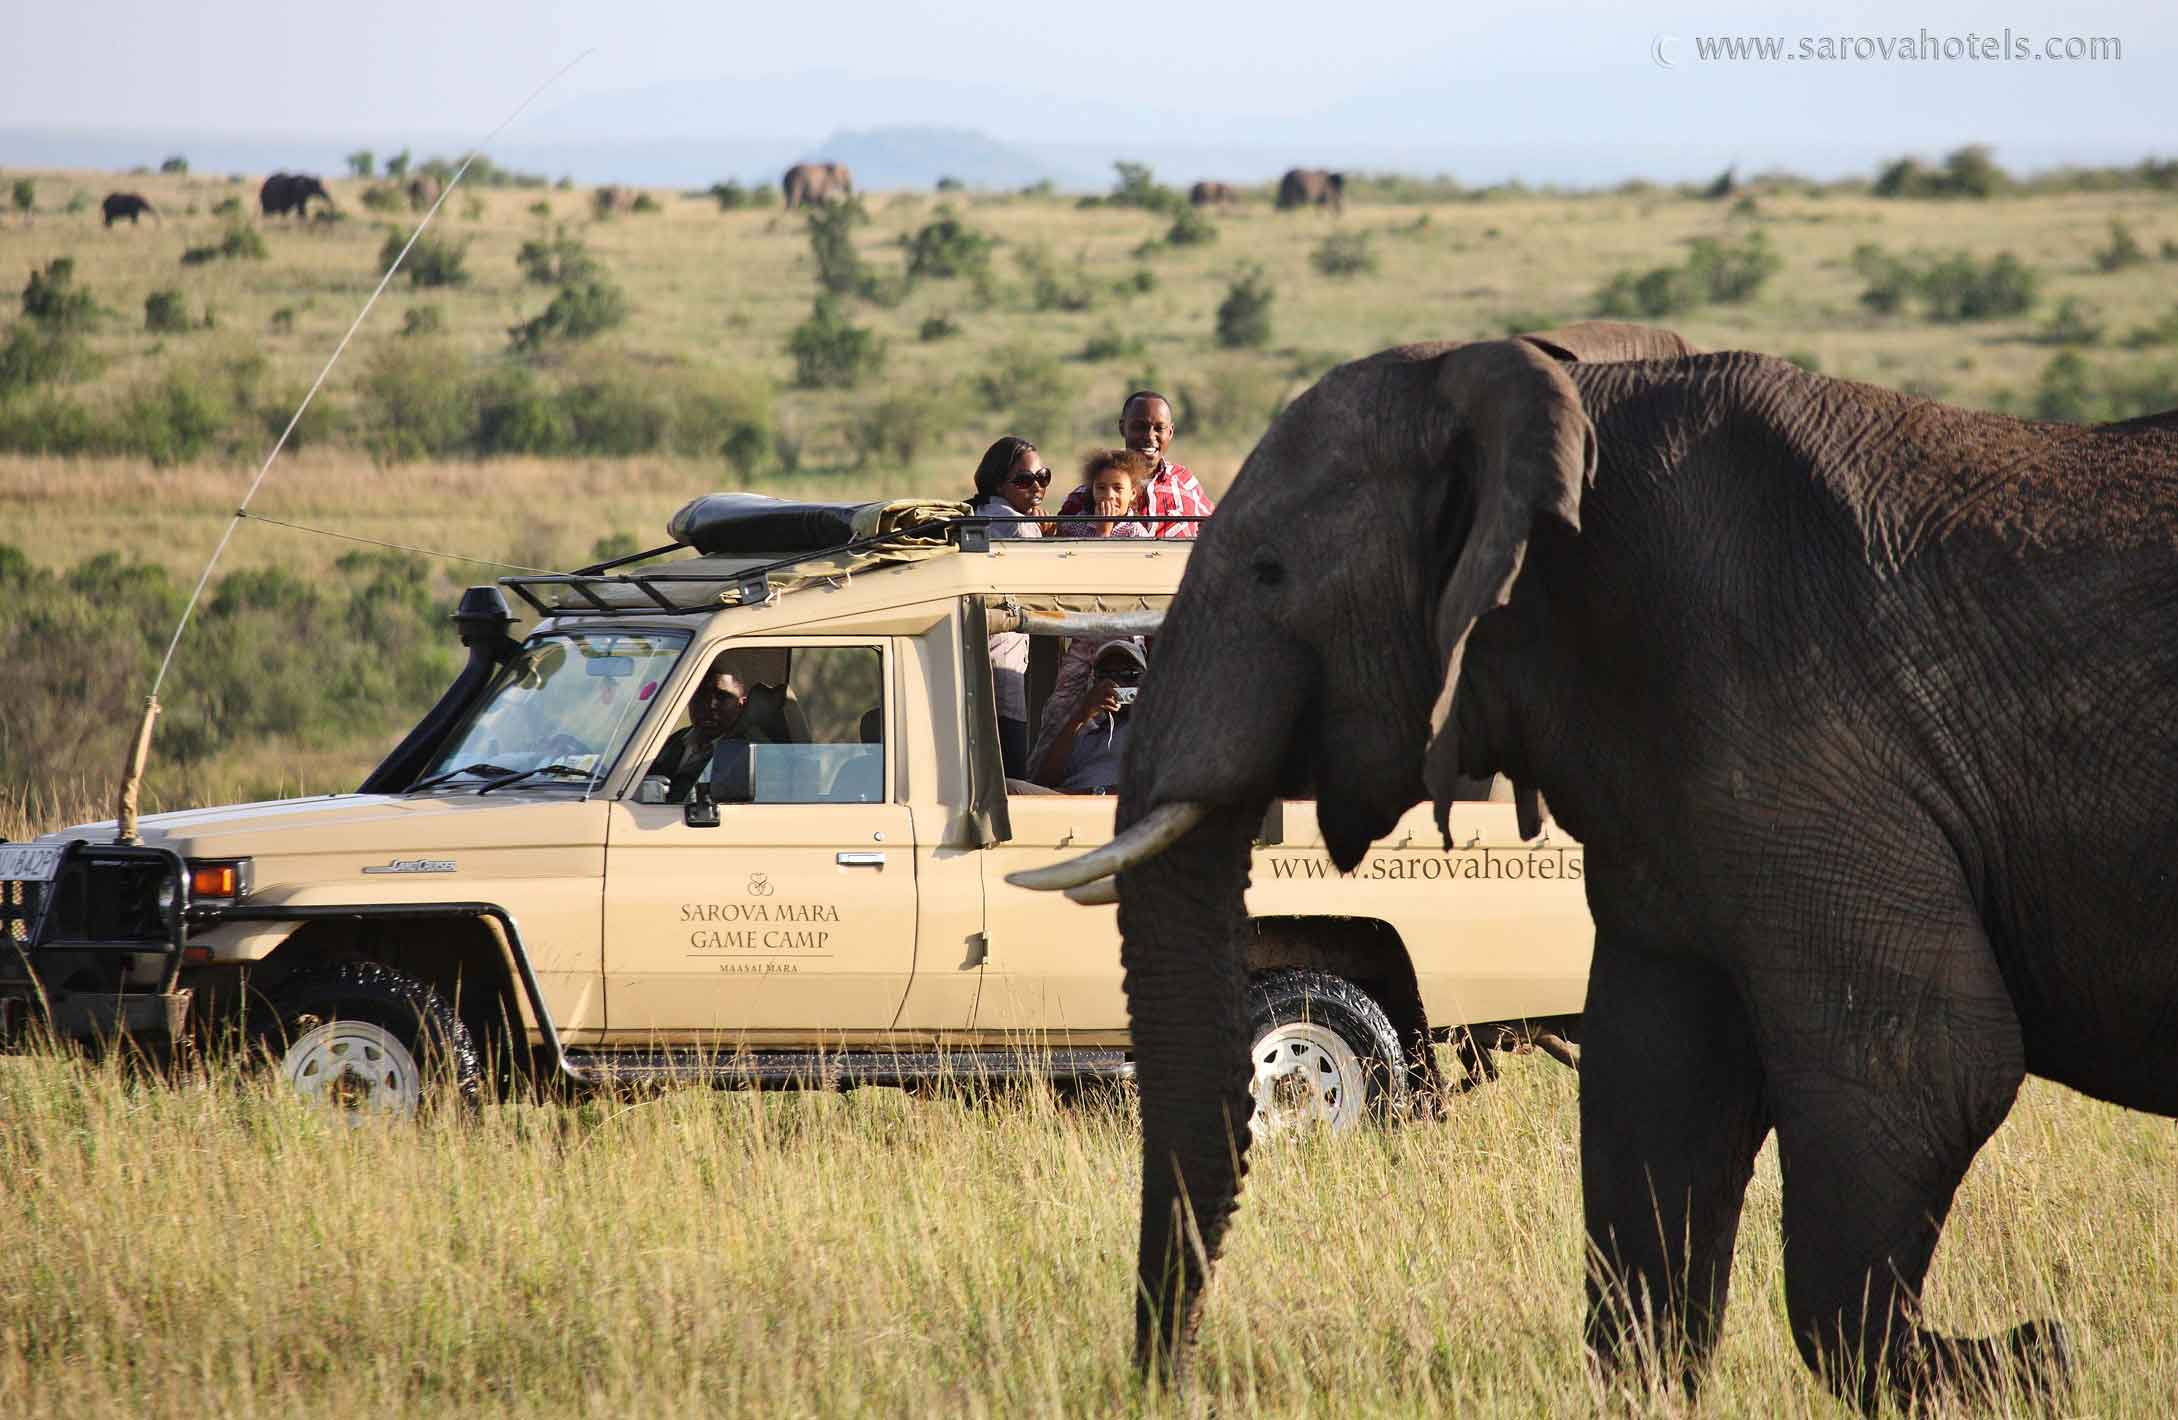 Up close on Safari (Customised Tours to Africa)